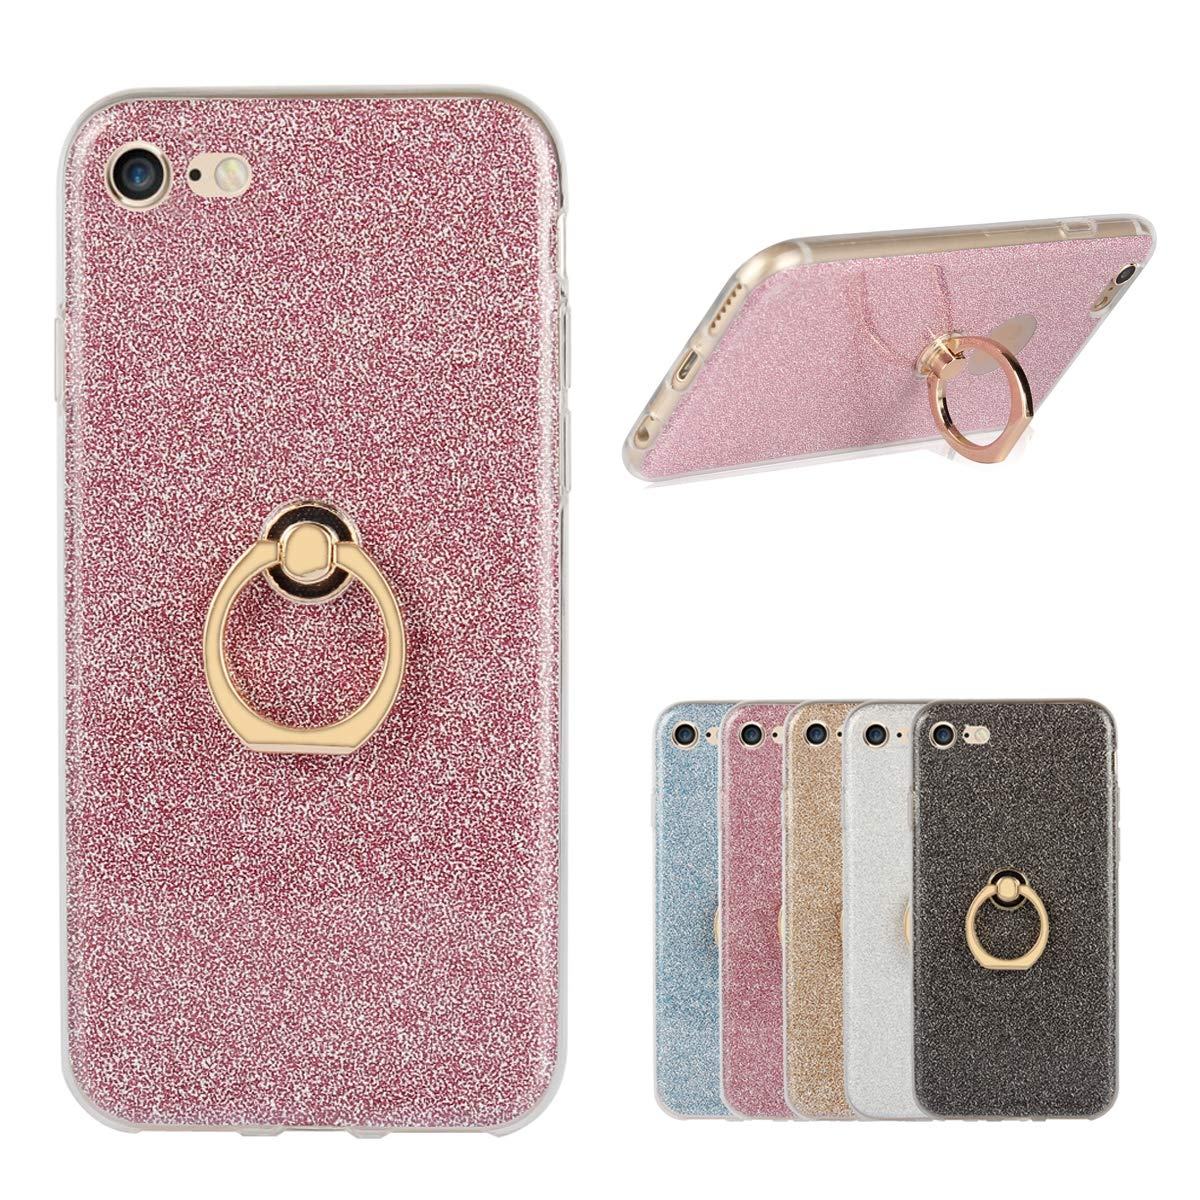 Misstars Peluche Pom Pom Custodia per iPhone 7/ iPhone 8, 2 in 1 Trasparente Morbido TPU + Bling Glitter Paper Oro Design Antiurto Protettiva Cover con Supporto Anello per Apple iPhone 7/8 (4,7') 7)